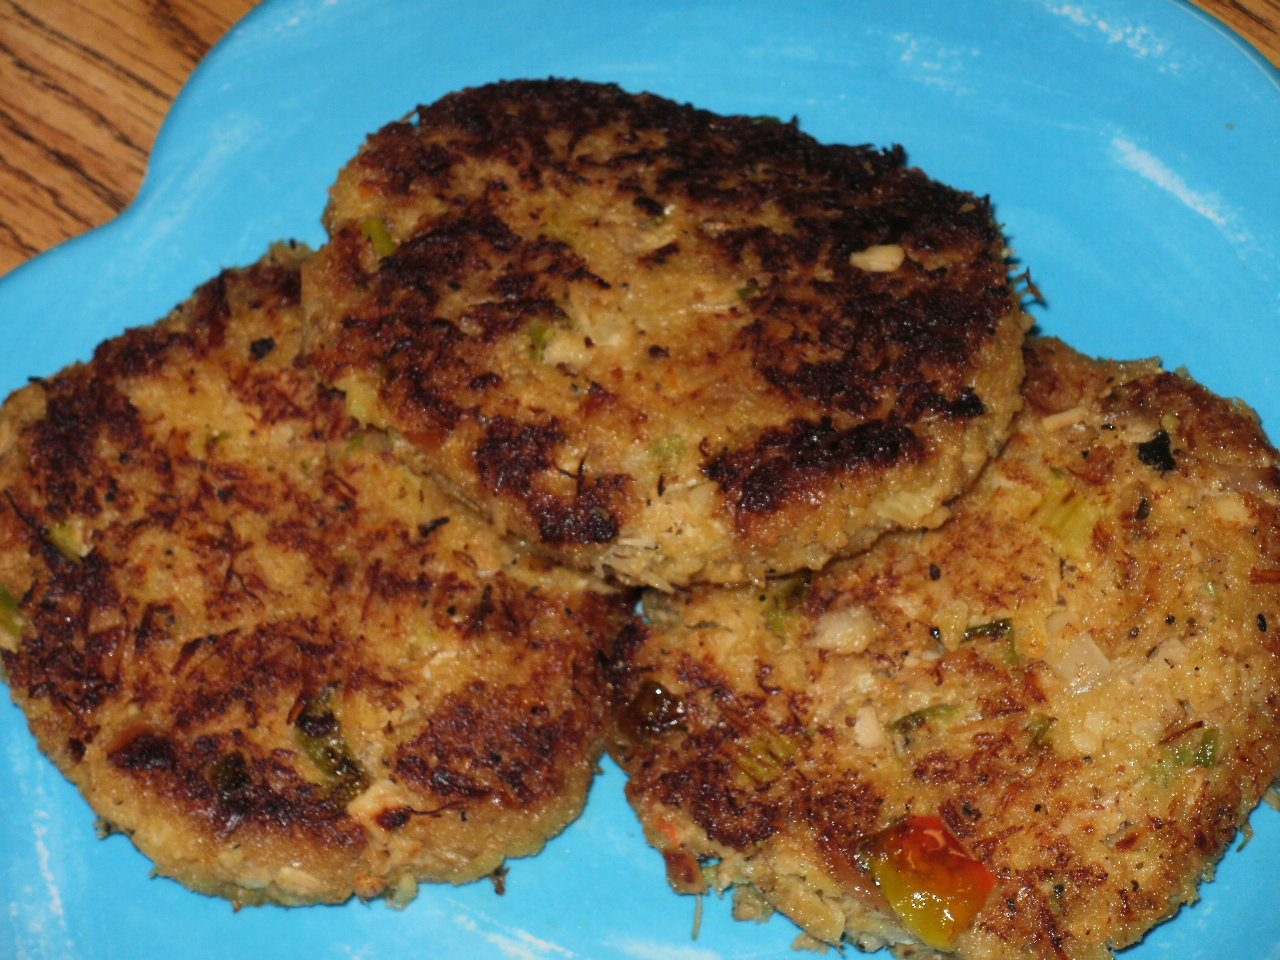 Real Life Living: Turkey Cakes With Creole Sauce